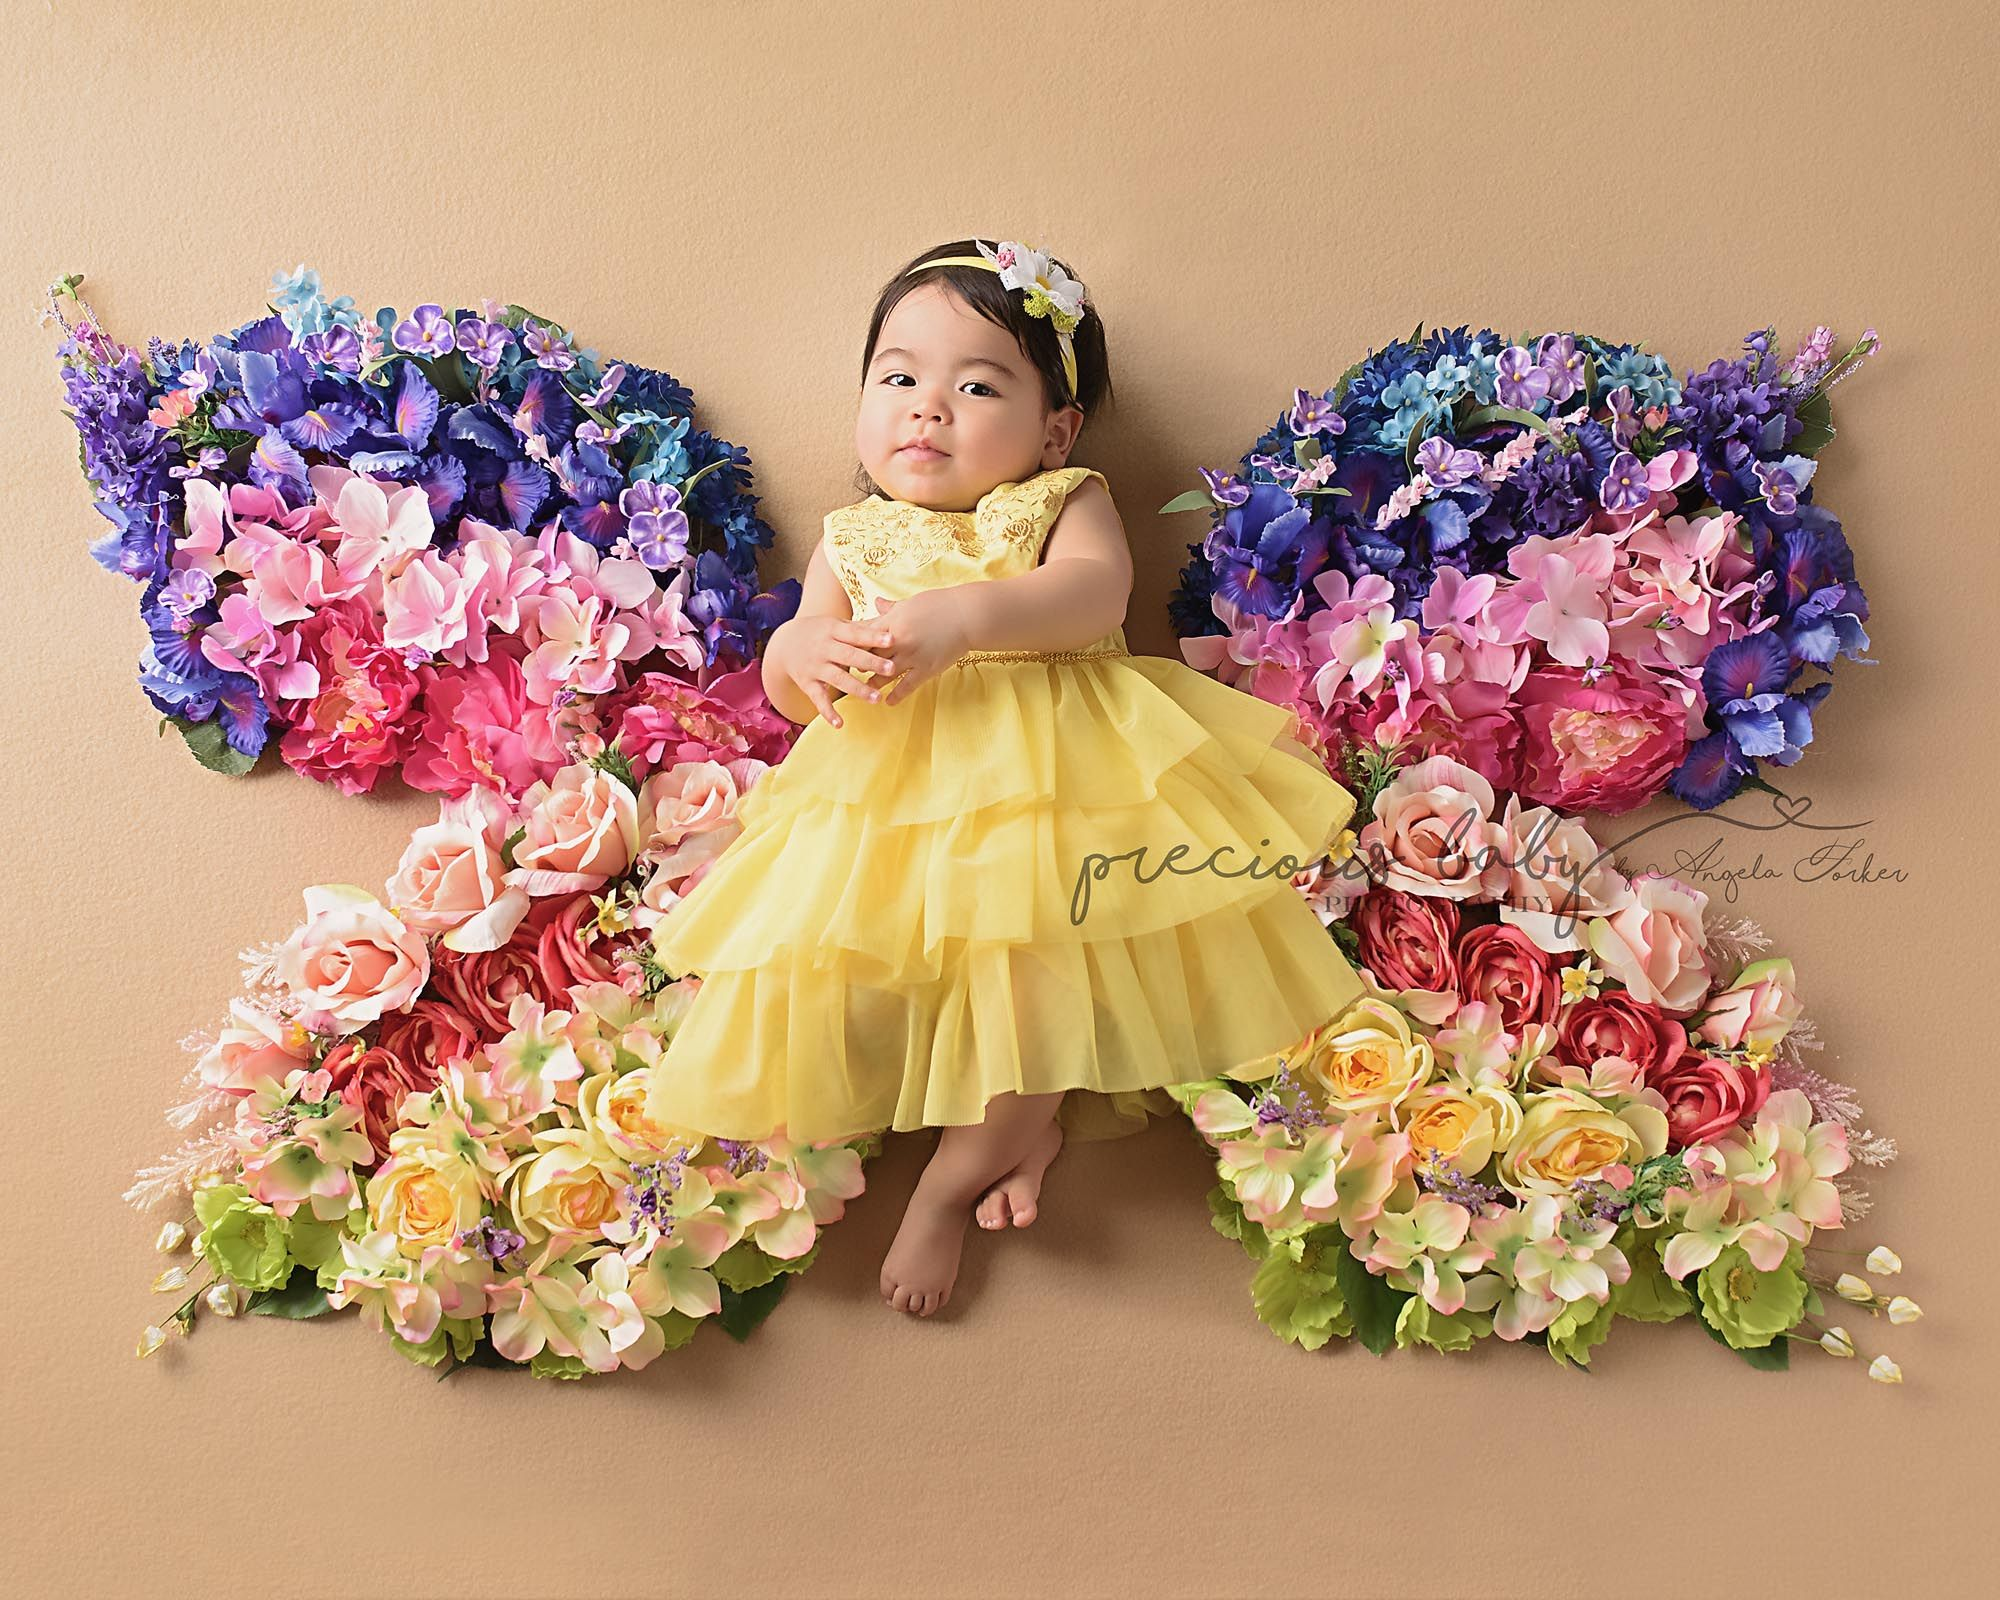 Beautiful Hispanic Baby Girl Lying On A Butterfly Flower Blanket Multicolored Rainbow Colors Roses Baby Photoshoot Baby Photoshoot Girl Baby Girl Photography